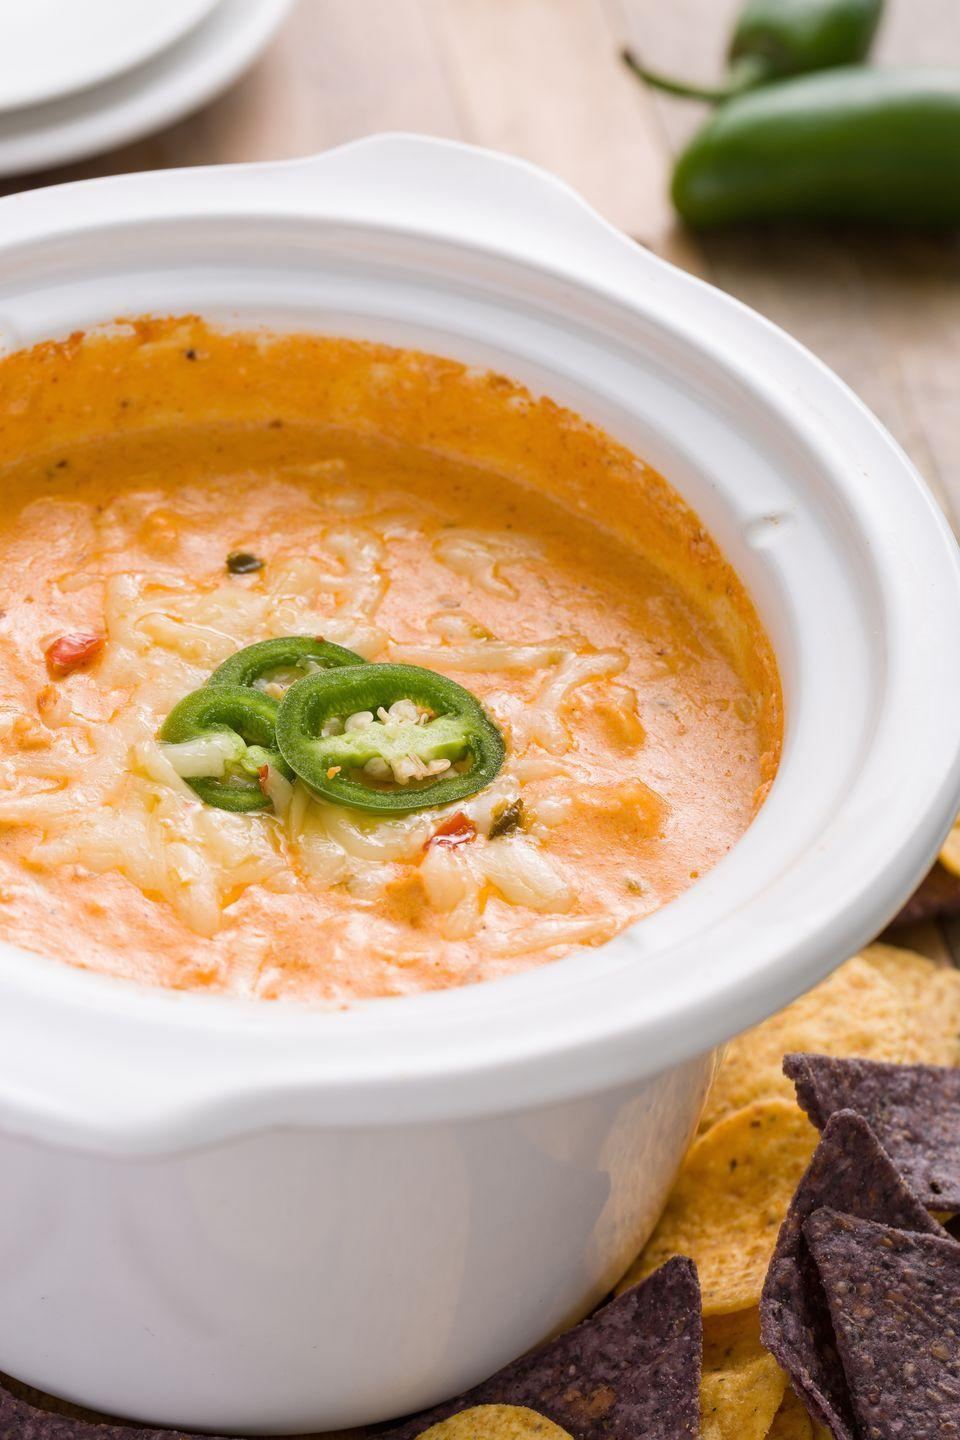 """<p>Tortilla chips are off limits, but you can dunk veggies in this delish dip, the keto crackers we mentioned above...or just eat it by the spoonful.</p><p>Get the recipe from <a href=""""https://www.delish.com/cooking/recipe-ideas/recipes/a44668/slow-cooker-chicken-enchilada-dip-recipe/"""" rel=""""nofollow noopener"""" target=""""_blank"""" data-ylk=""""slk:Delish"""" class=""""link rapid-noclick-resp"""">Delish</a>. </p>"""